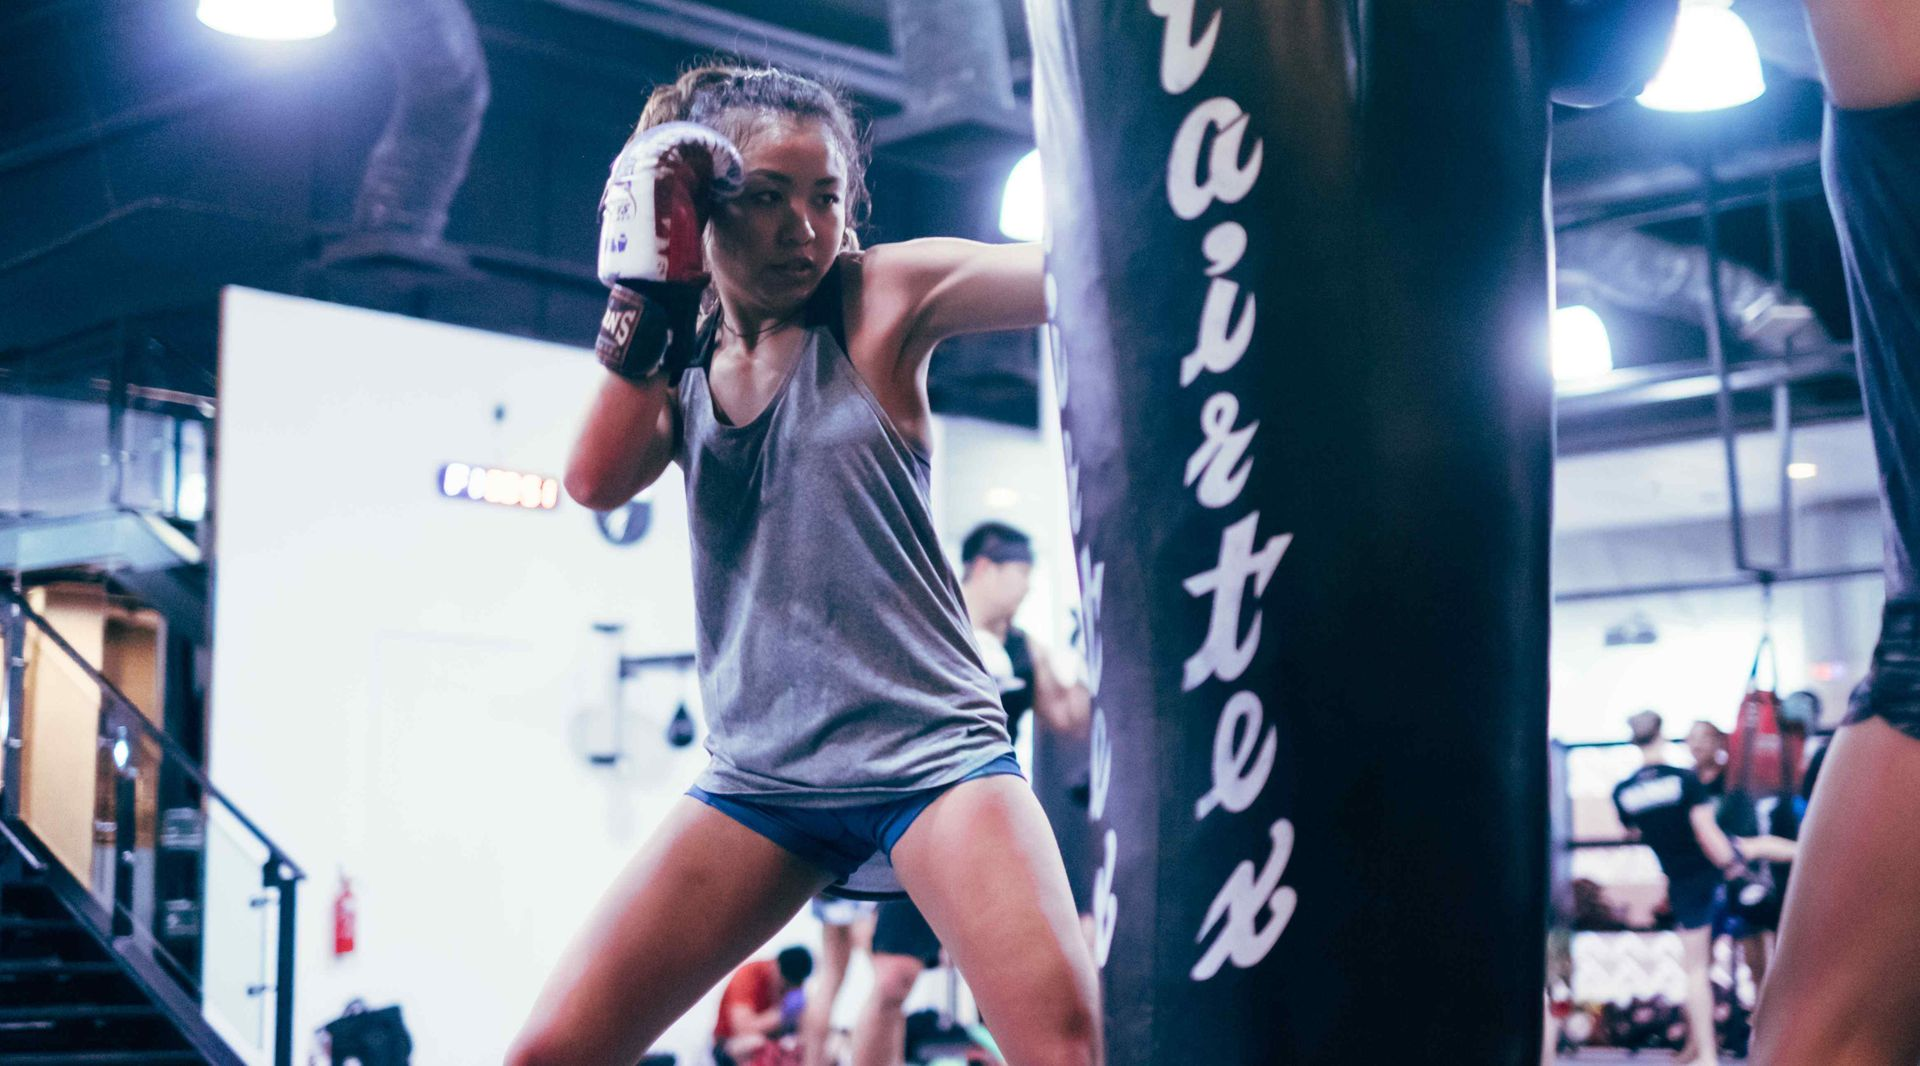 A student hits the heavy bag during a Muay Thai class at Evolve MMA in Singapore.